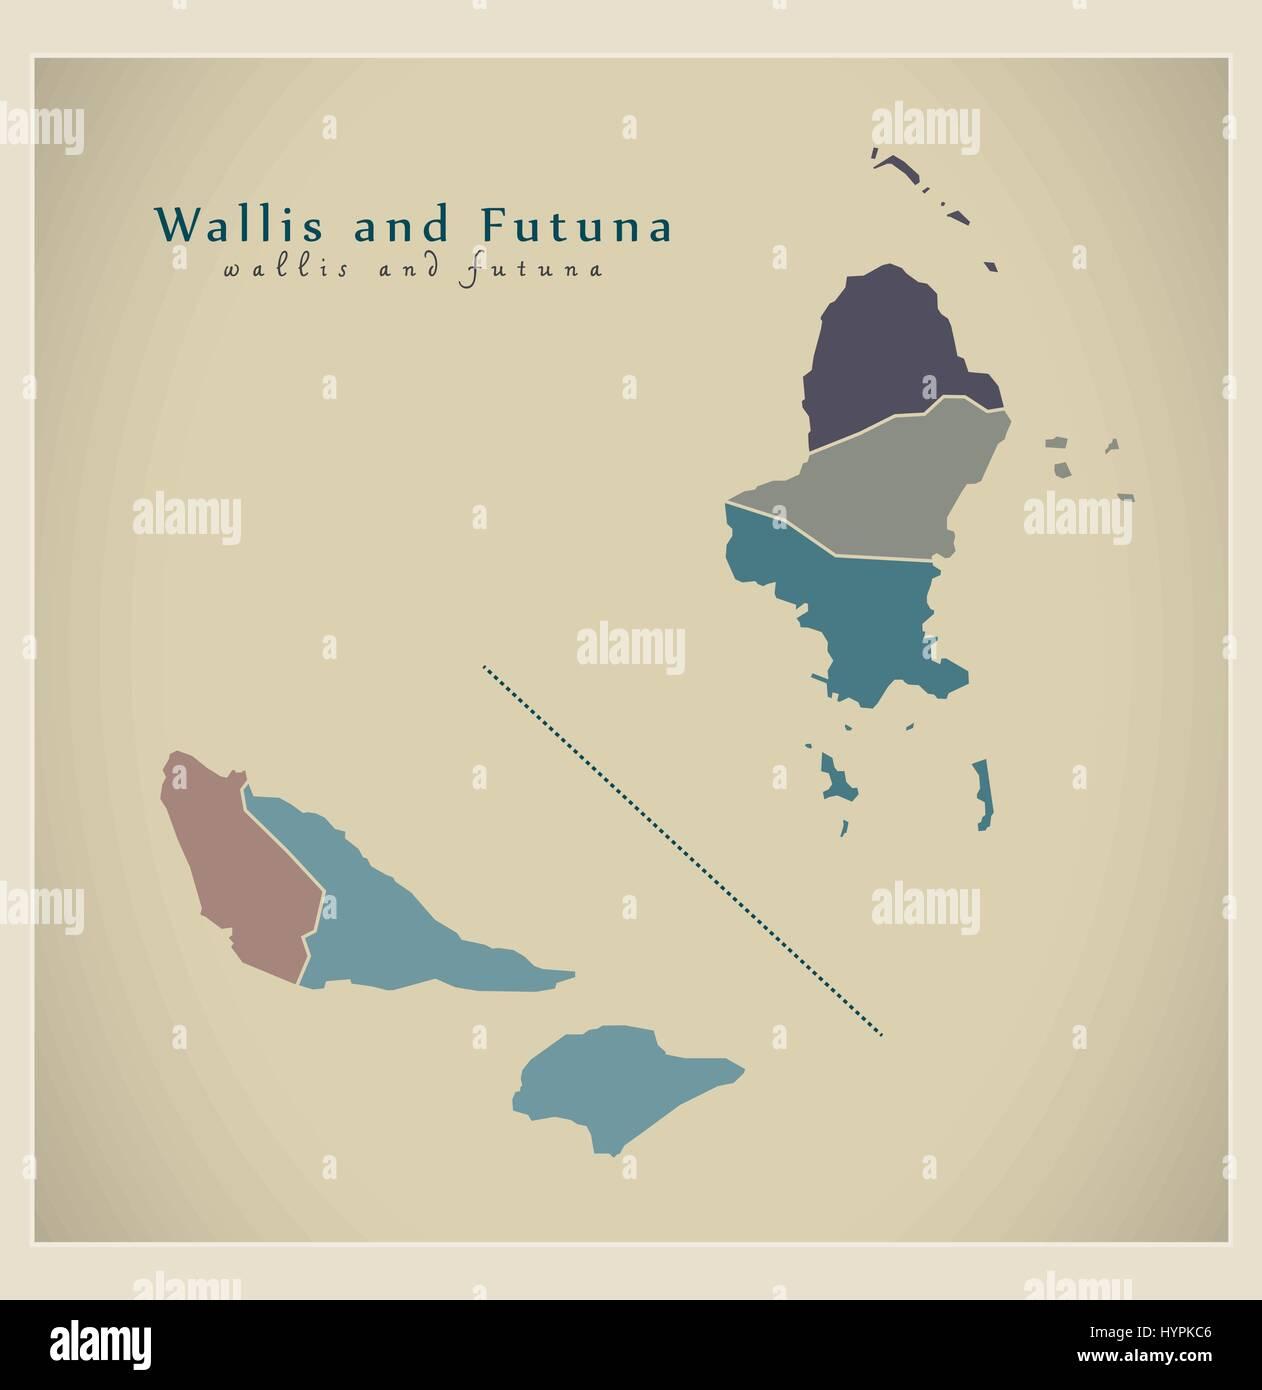 Modern Map - Wallis and Futuna colored WF - Stock Image